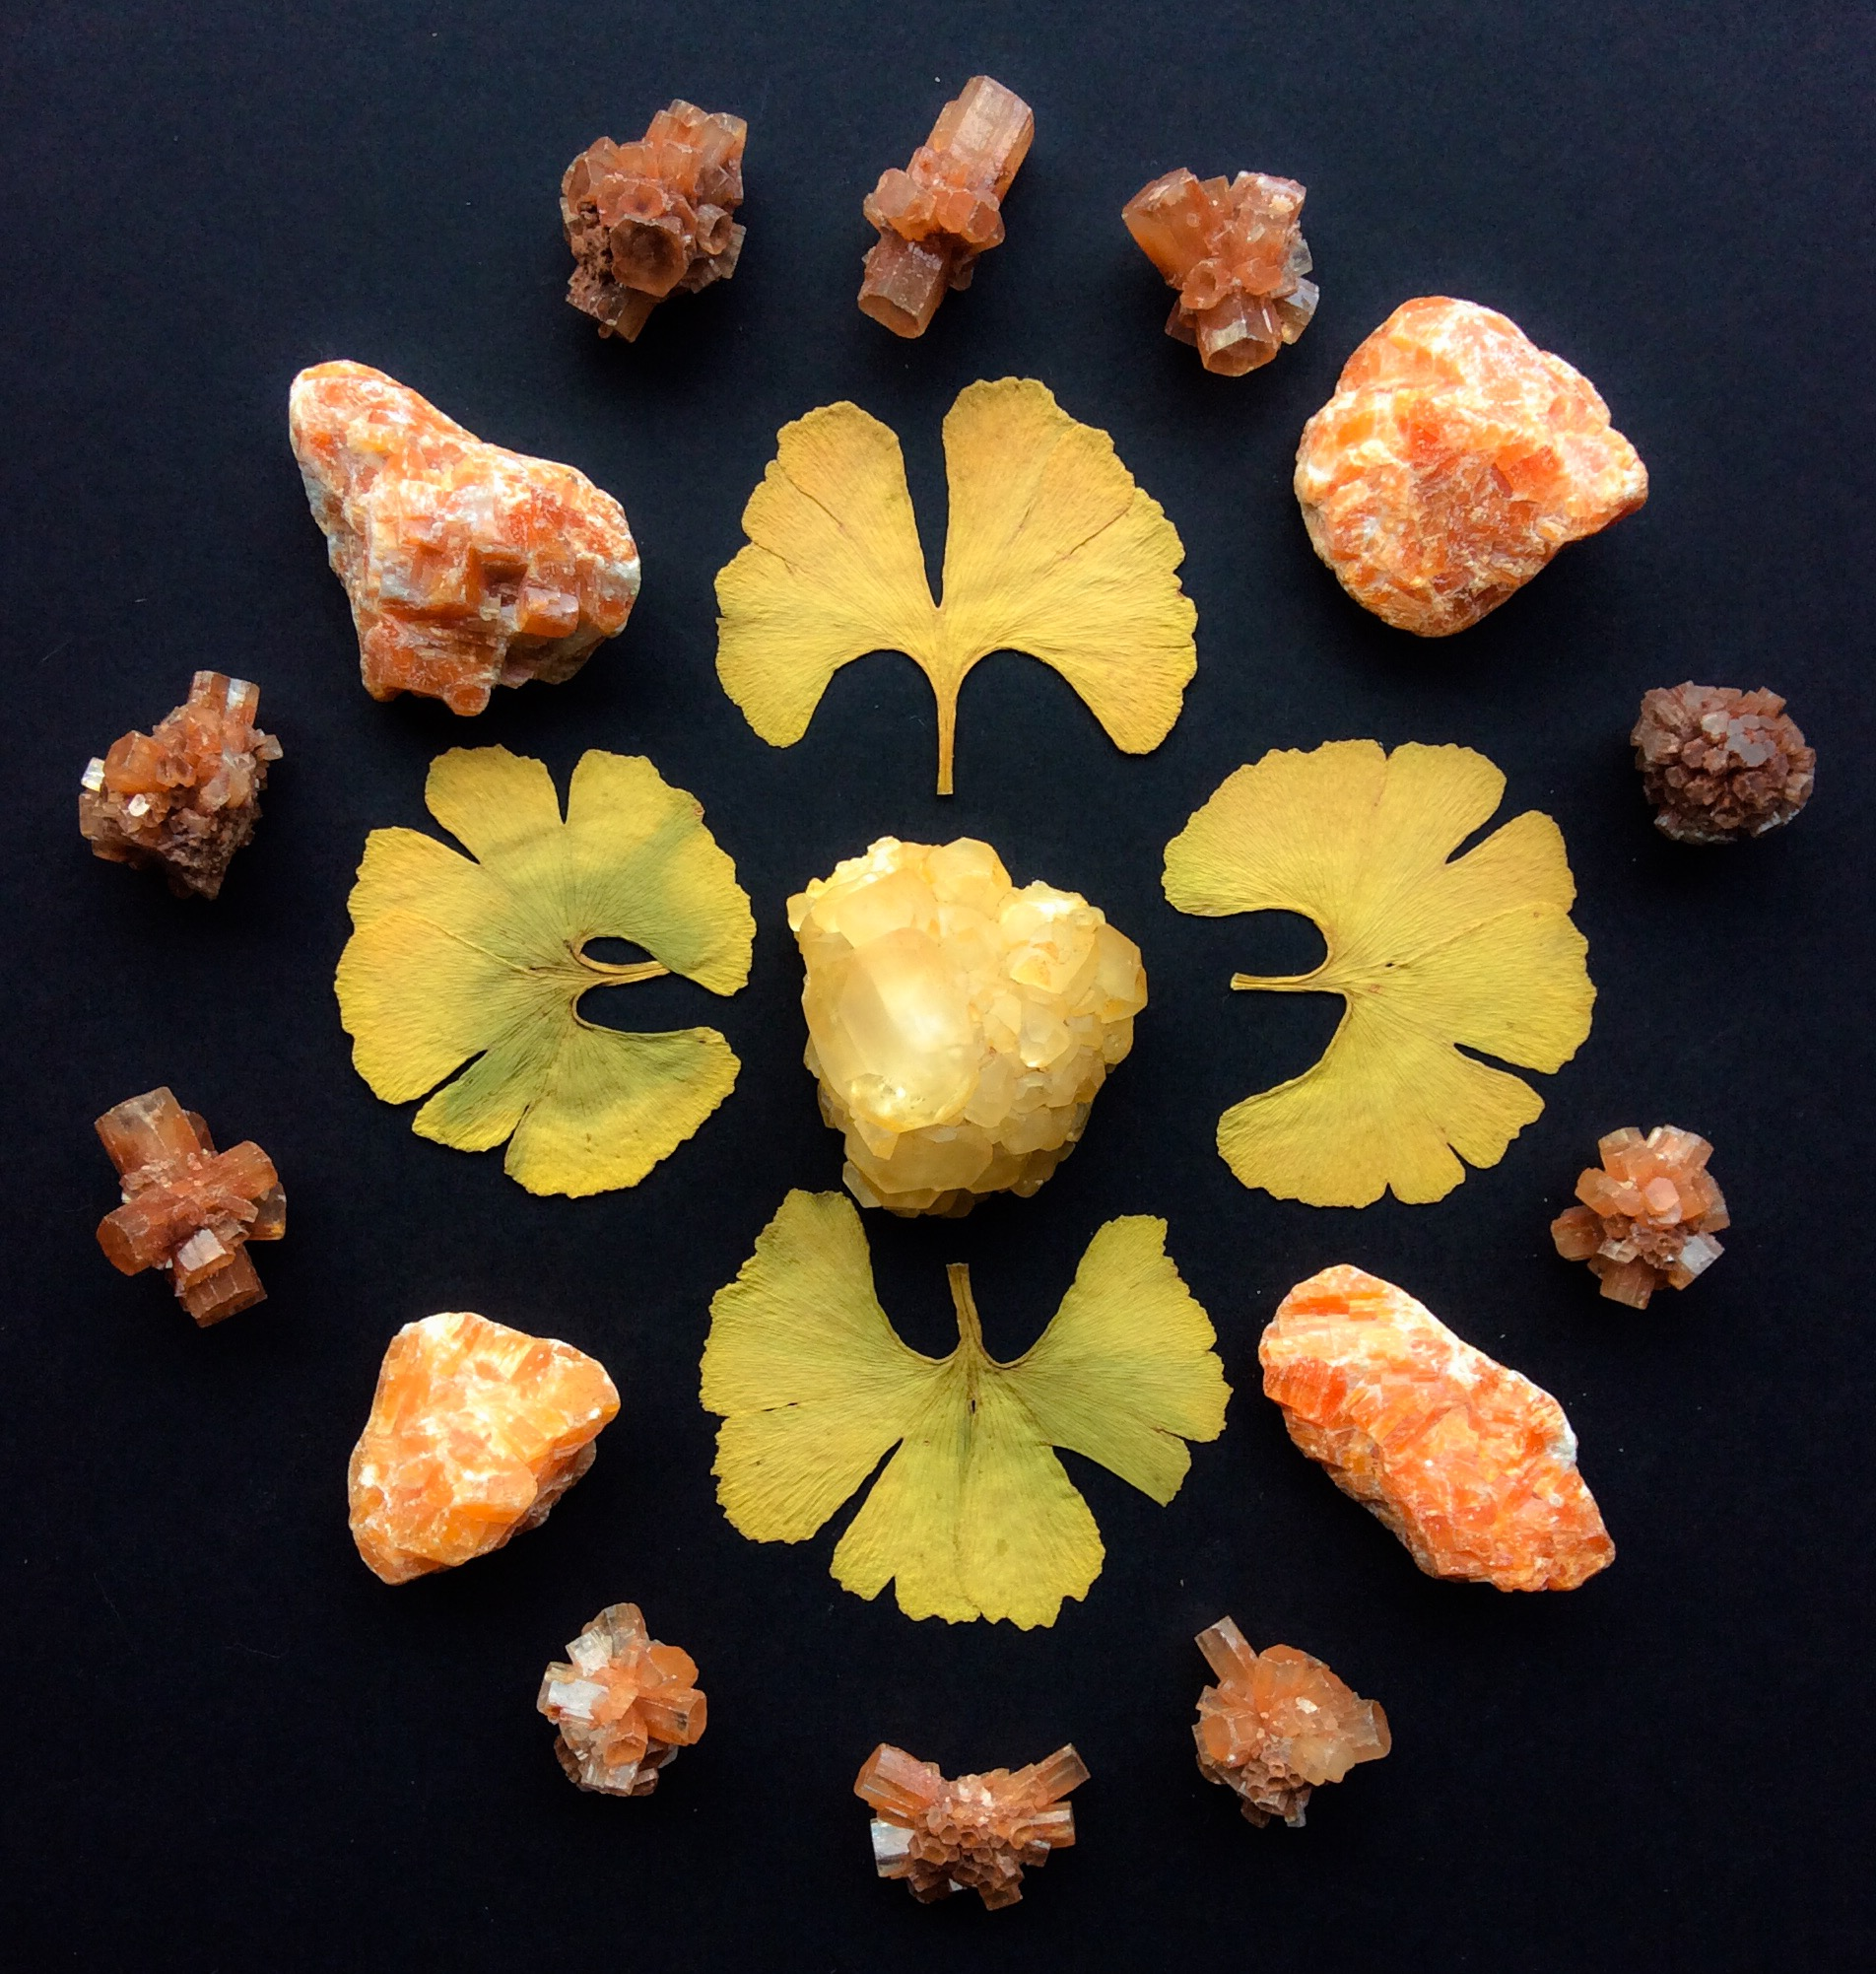 Aragonite, Honey Calcite, Orange Calcite and Gingko leaves